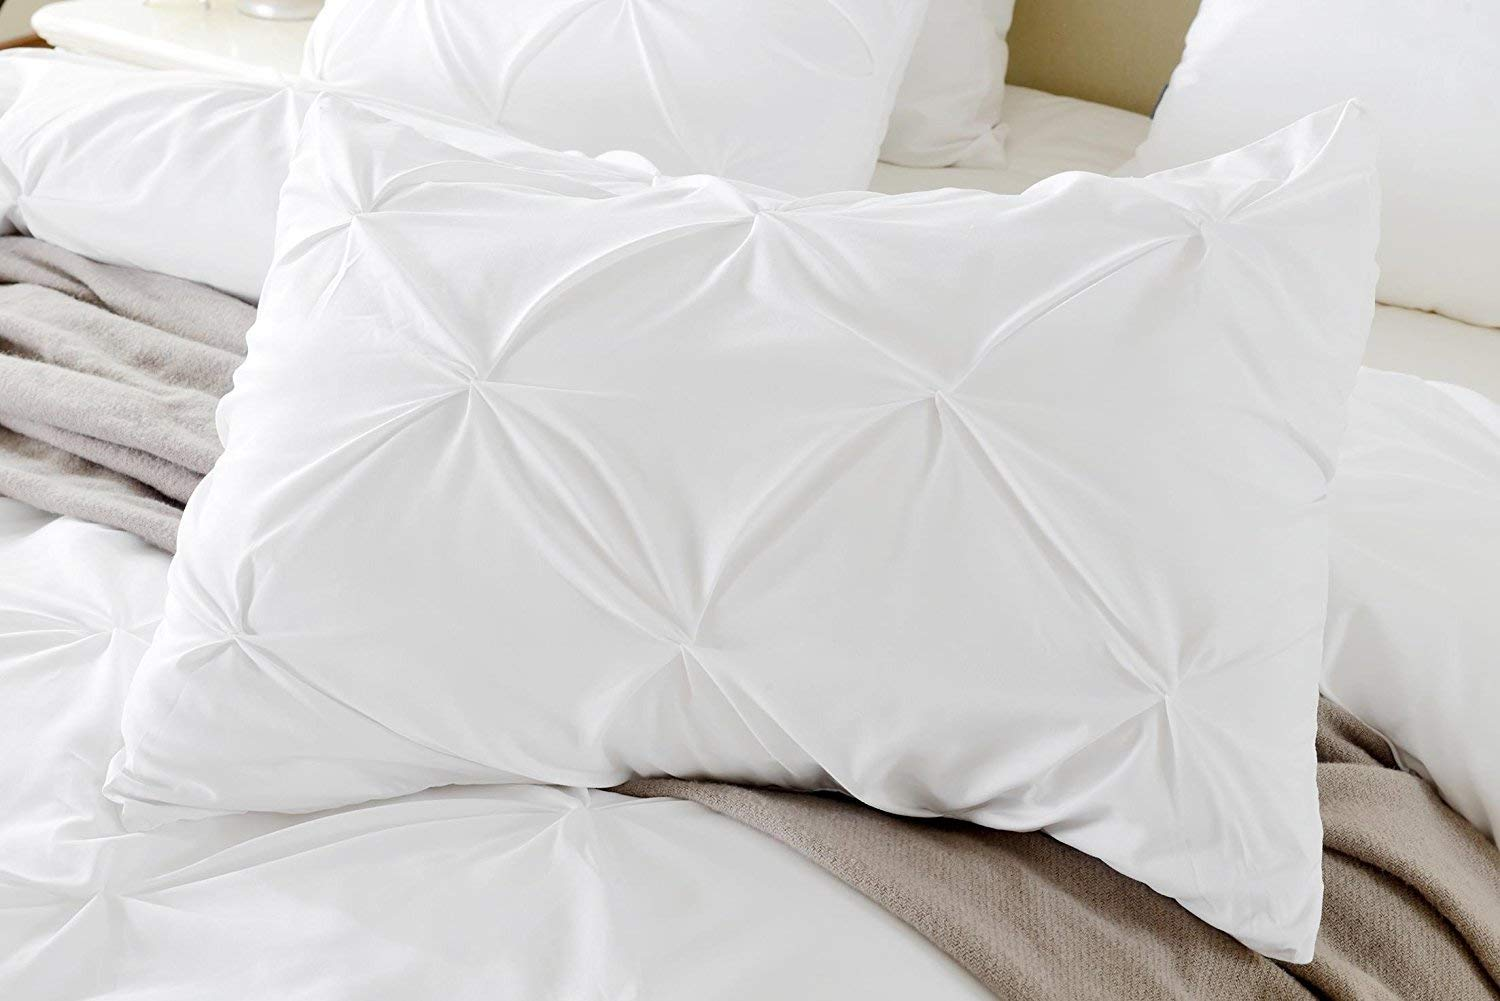 Standard Pinch Pleated Pillow Shams White Set of 2 600 Thread Count 100% Egyptian Cotton Pinch Pillow Shams Cushion Cover Pintuk Decorative Pillow Cover Pack of 2 (Standard 20X26, White)